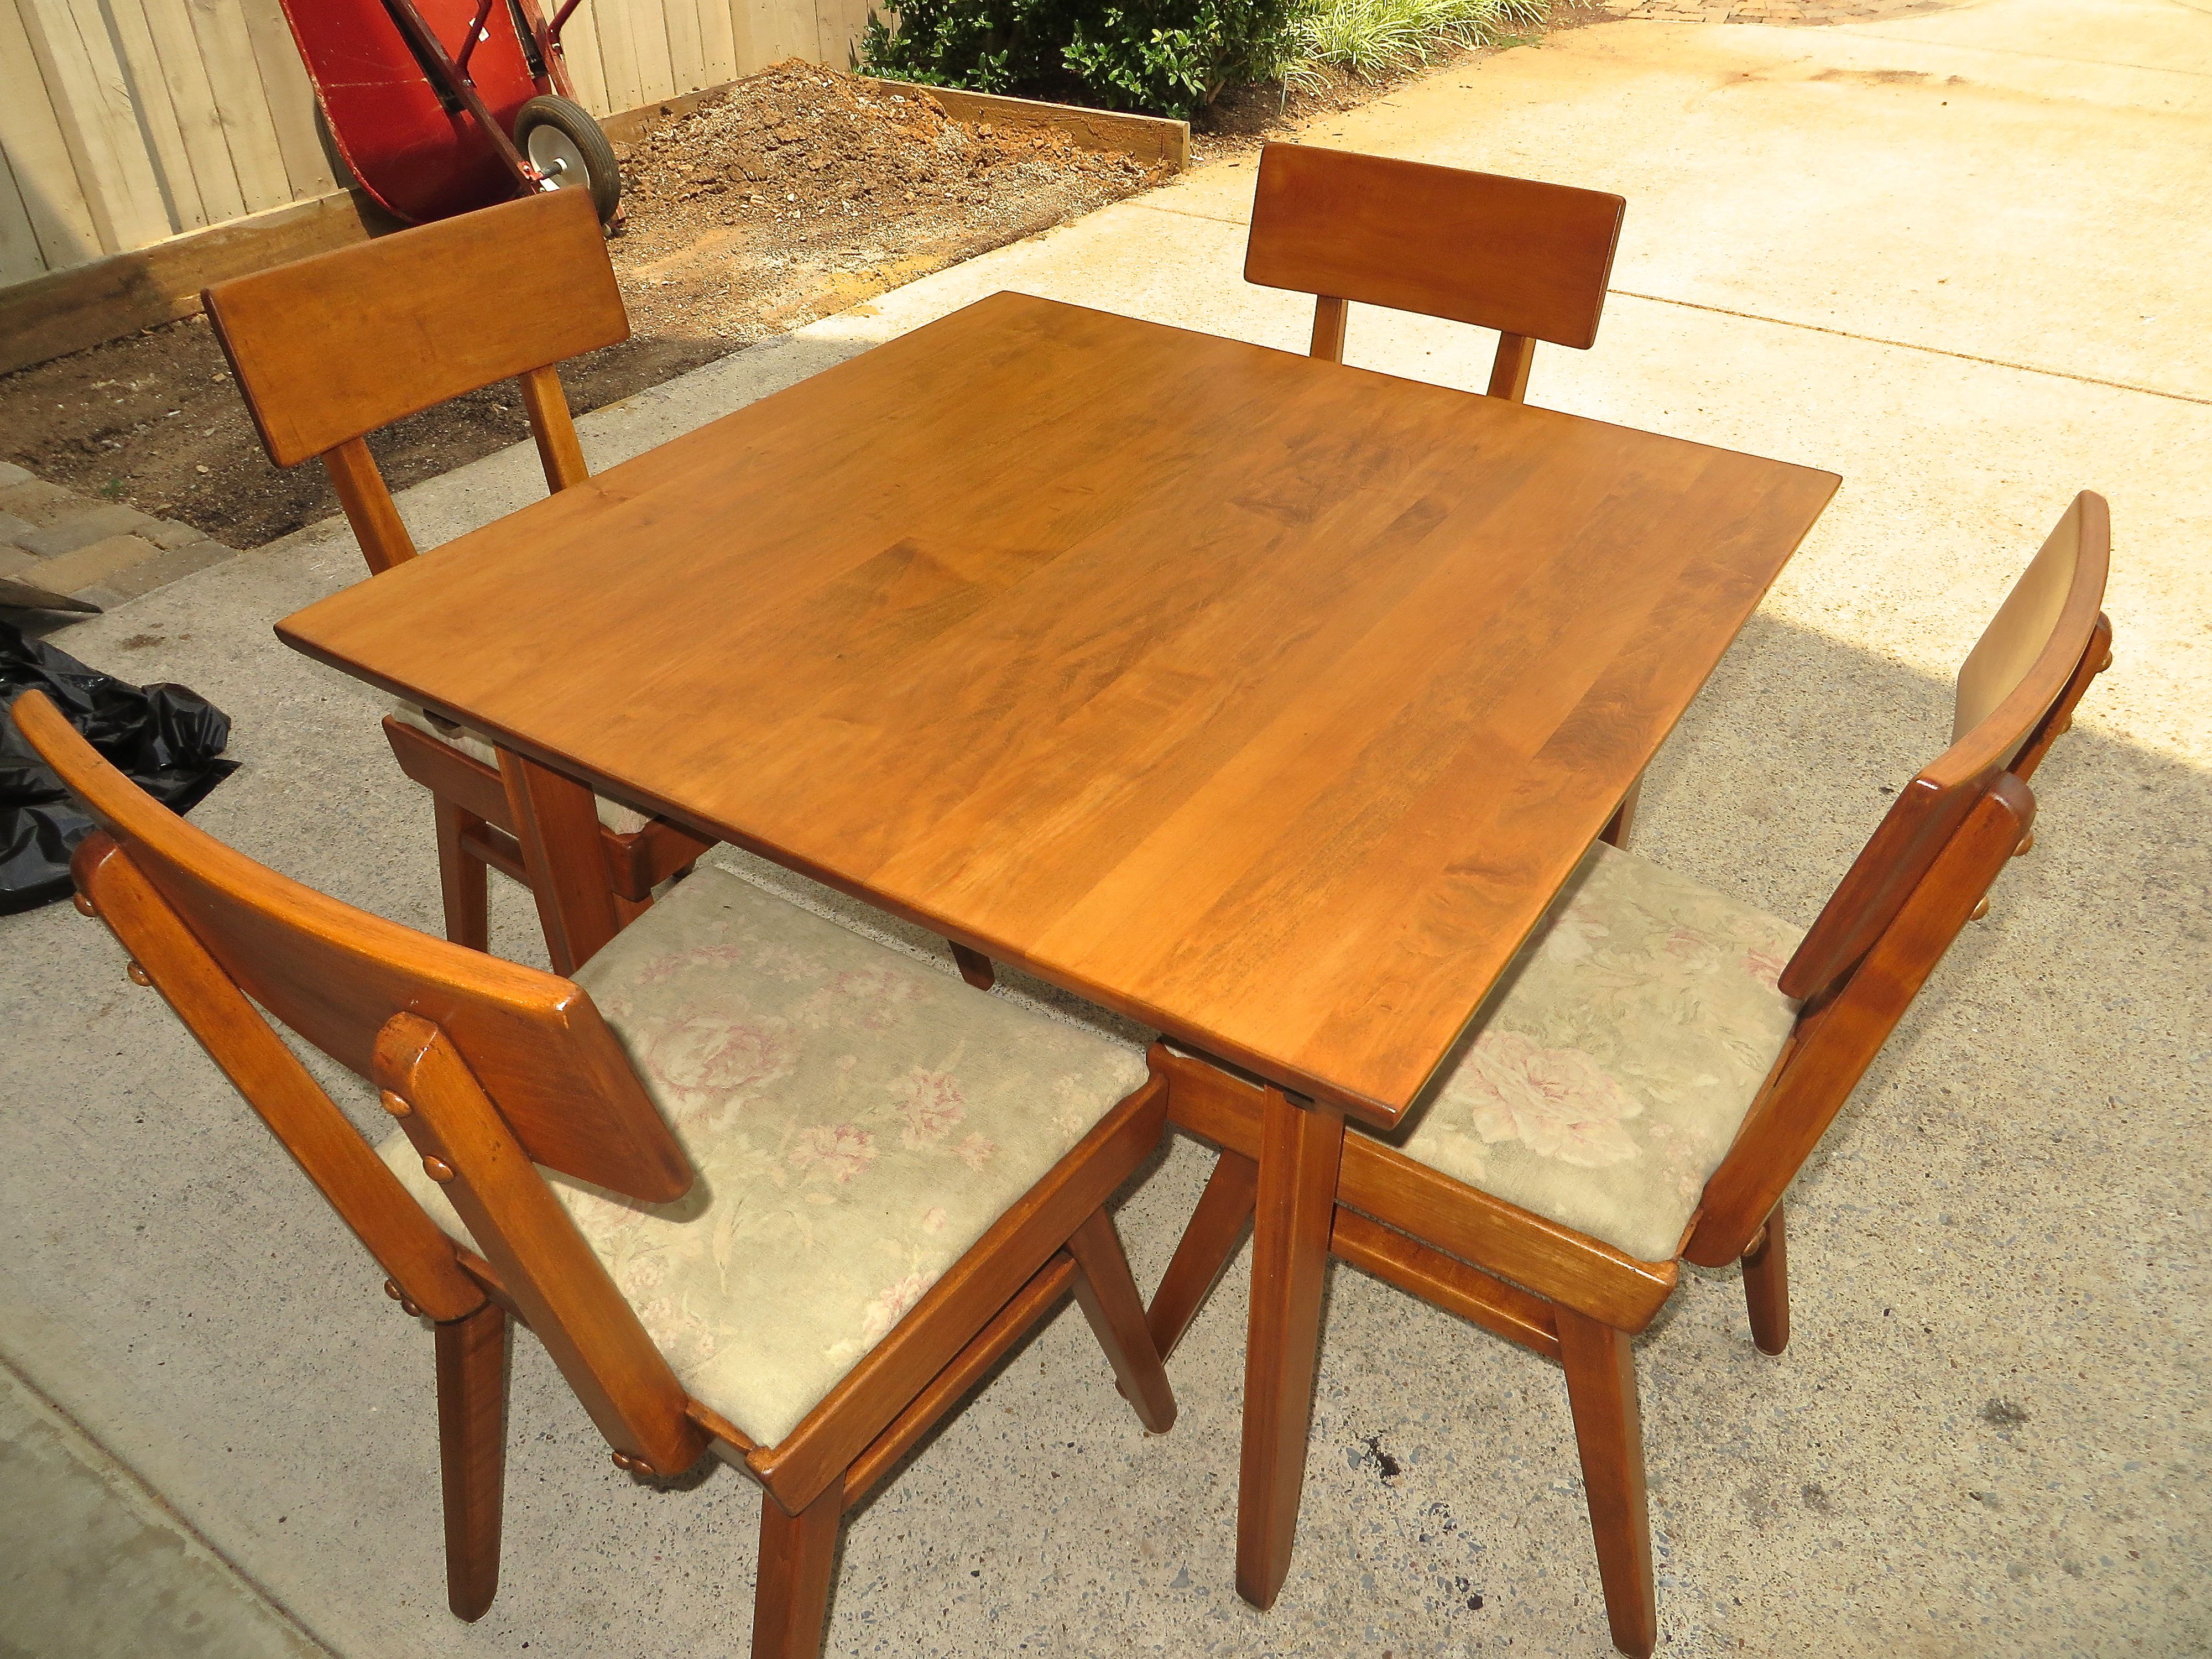 70 Year Old Table And Chairs Restored General Finishes Colonial Maple Gel Stain Followed With